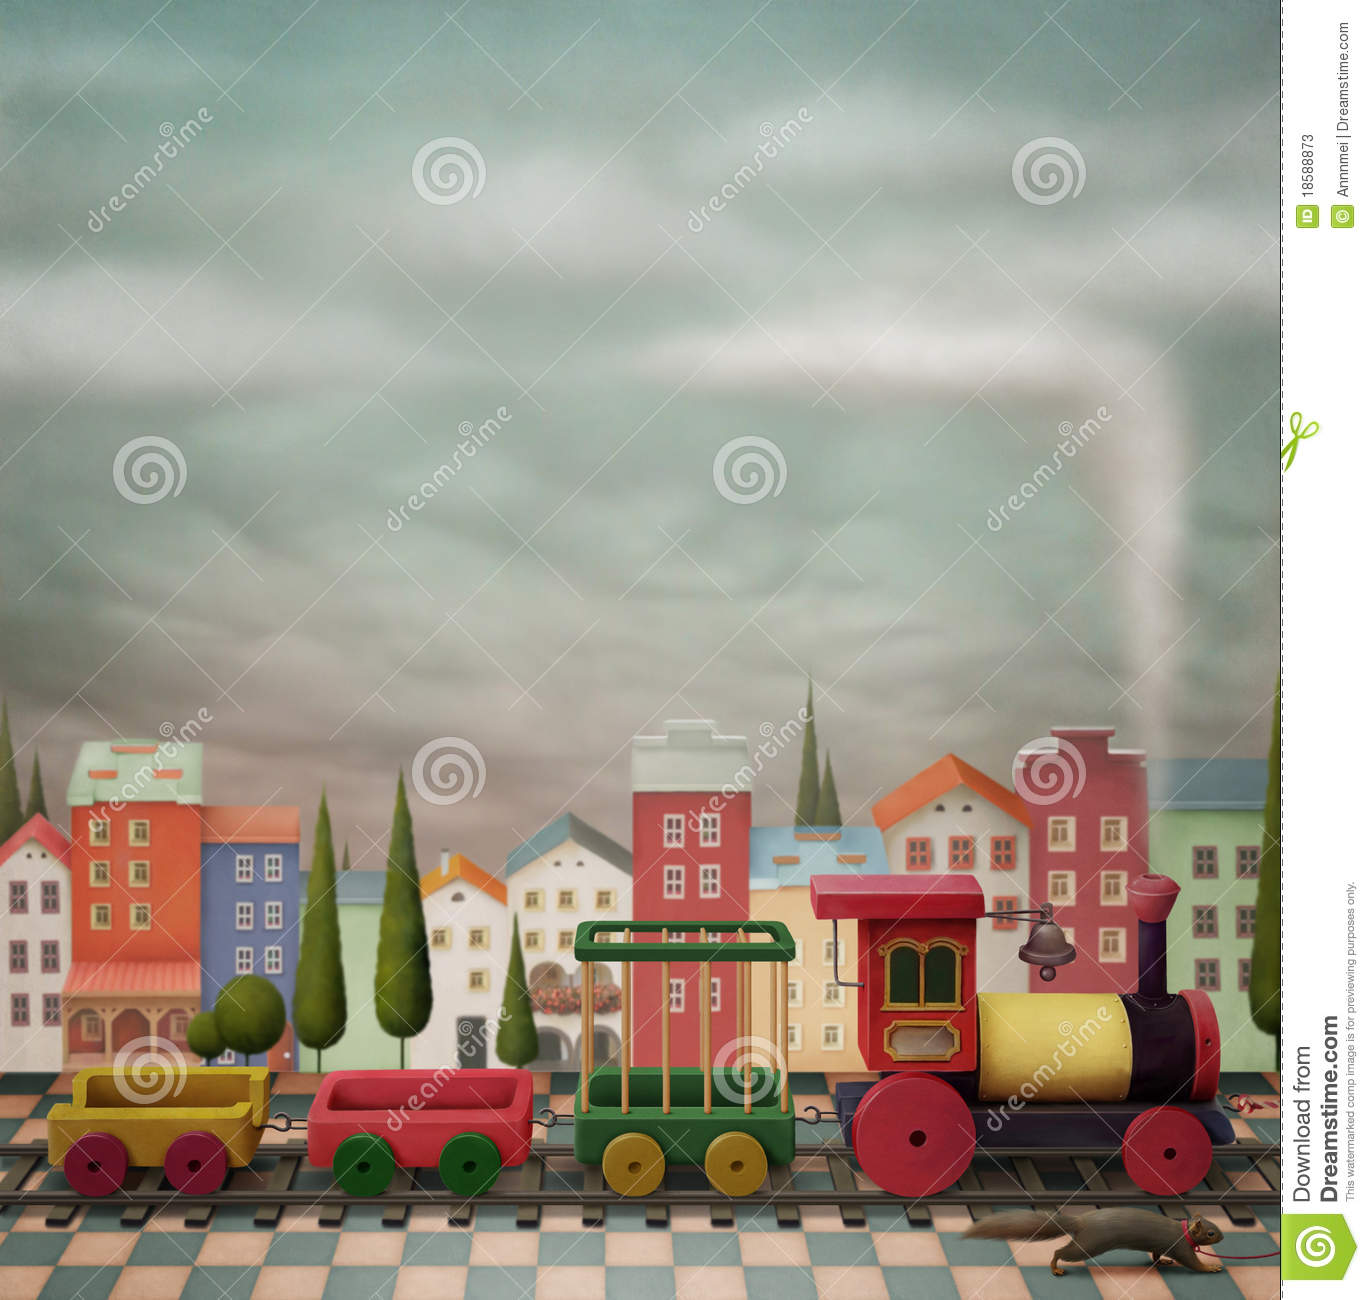 Imaginary toy train and the city